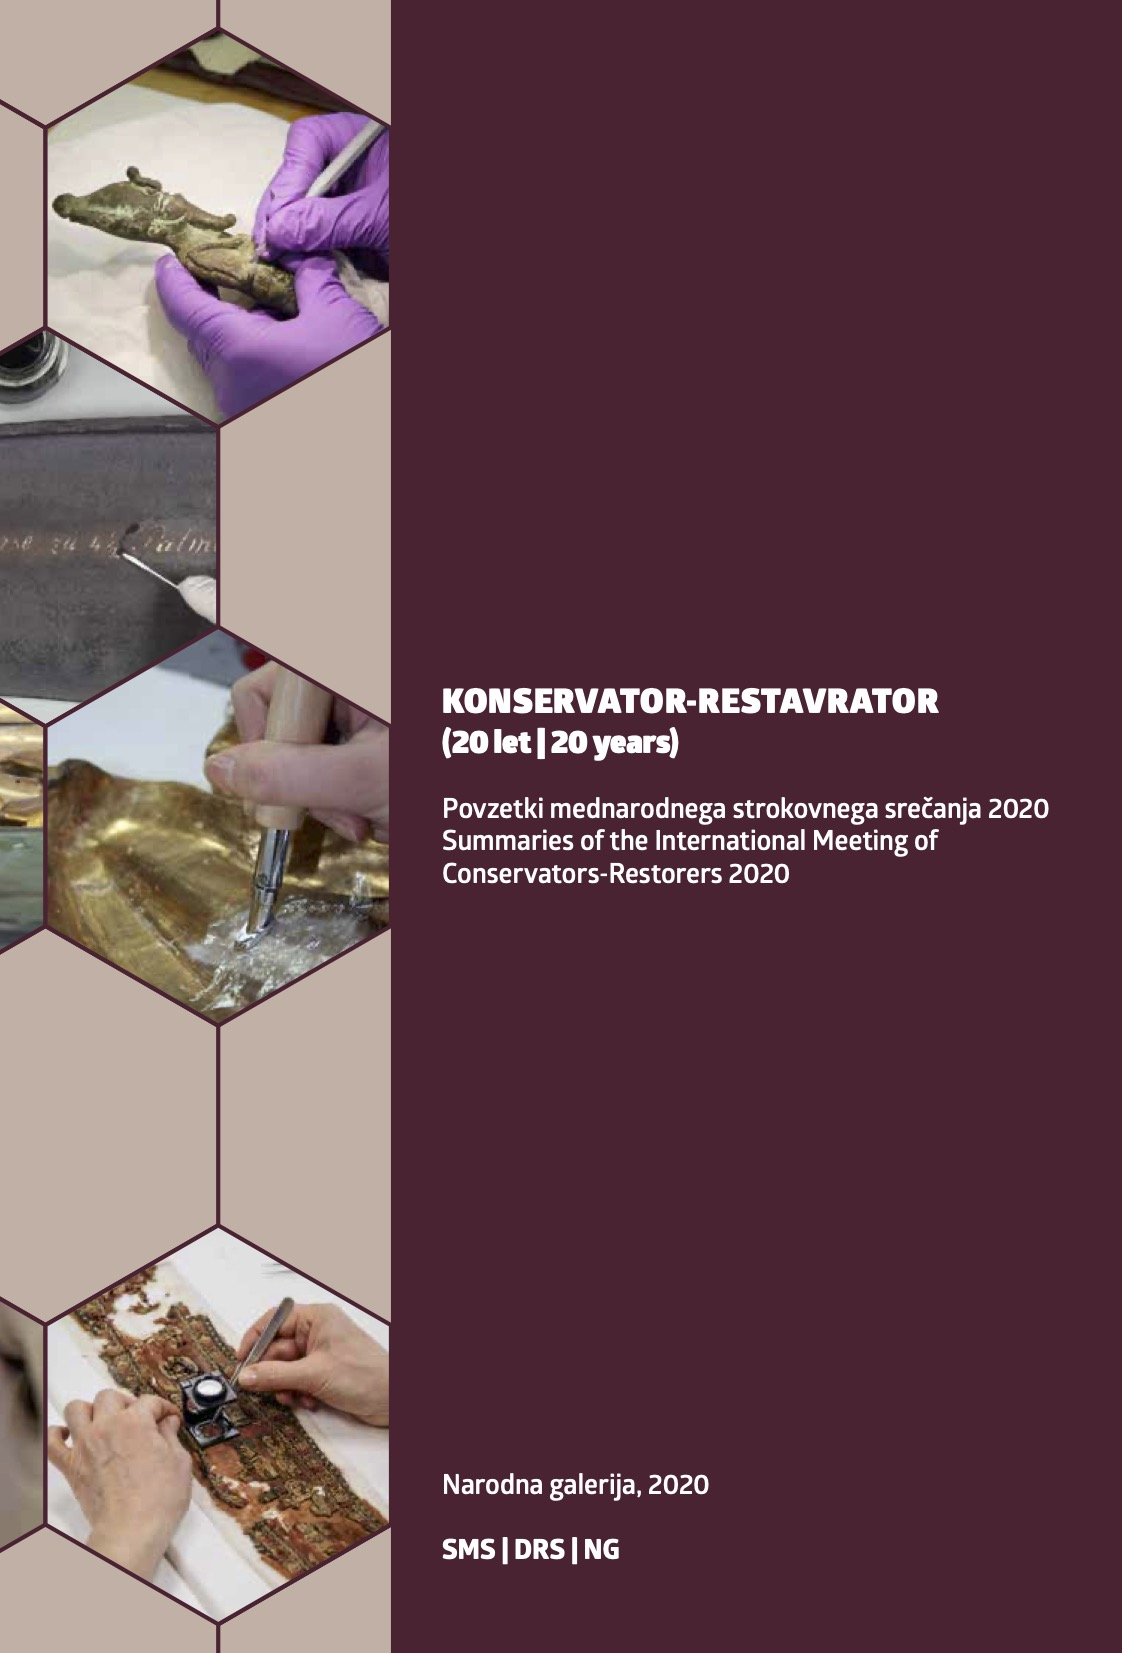 Poster presentation at the 20th International Meeting of Conservators-Restorers in Slovenia